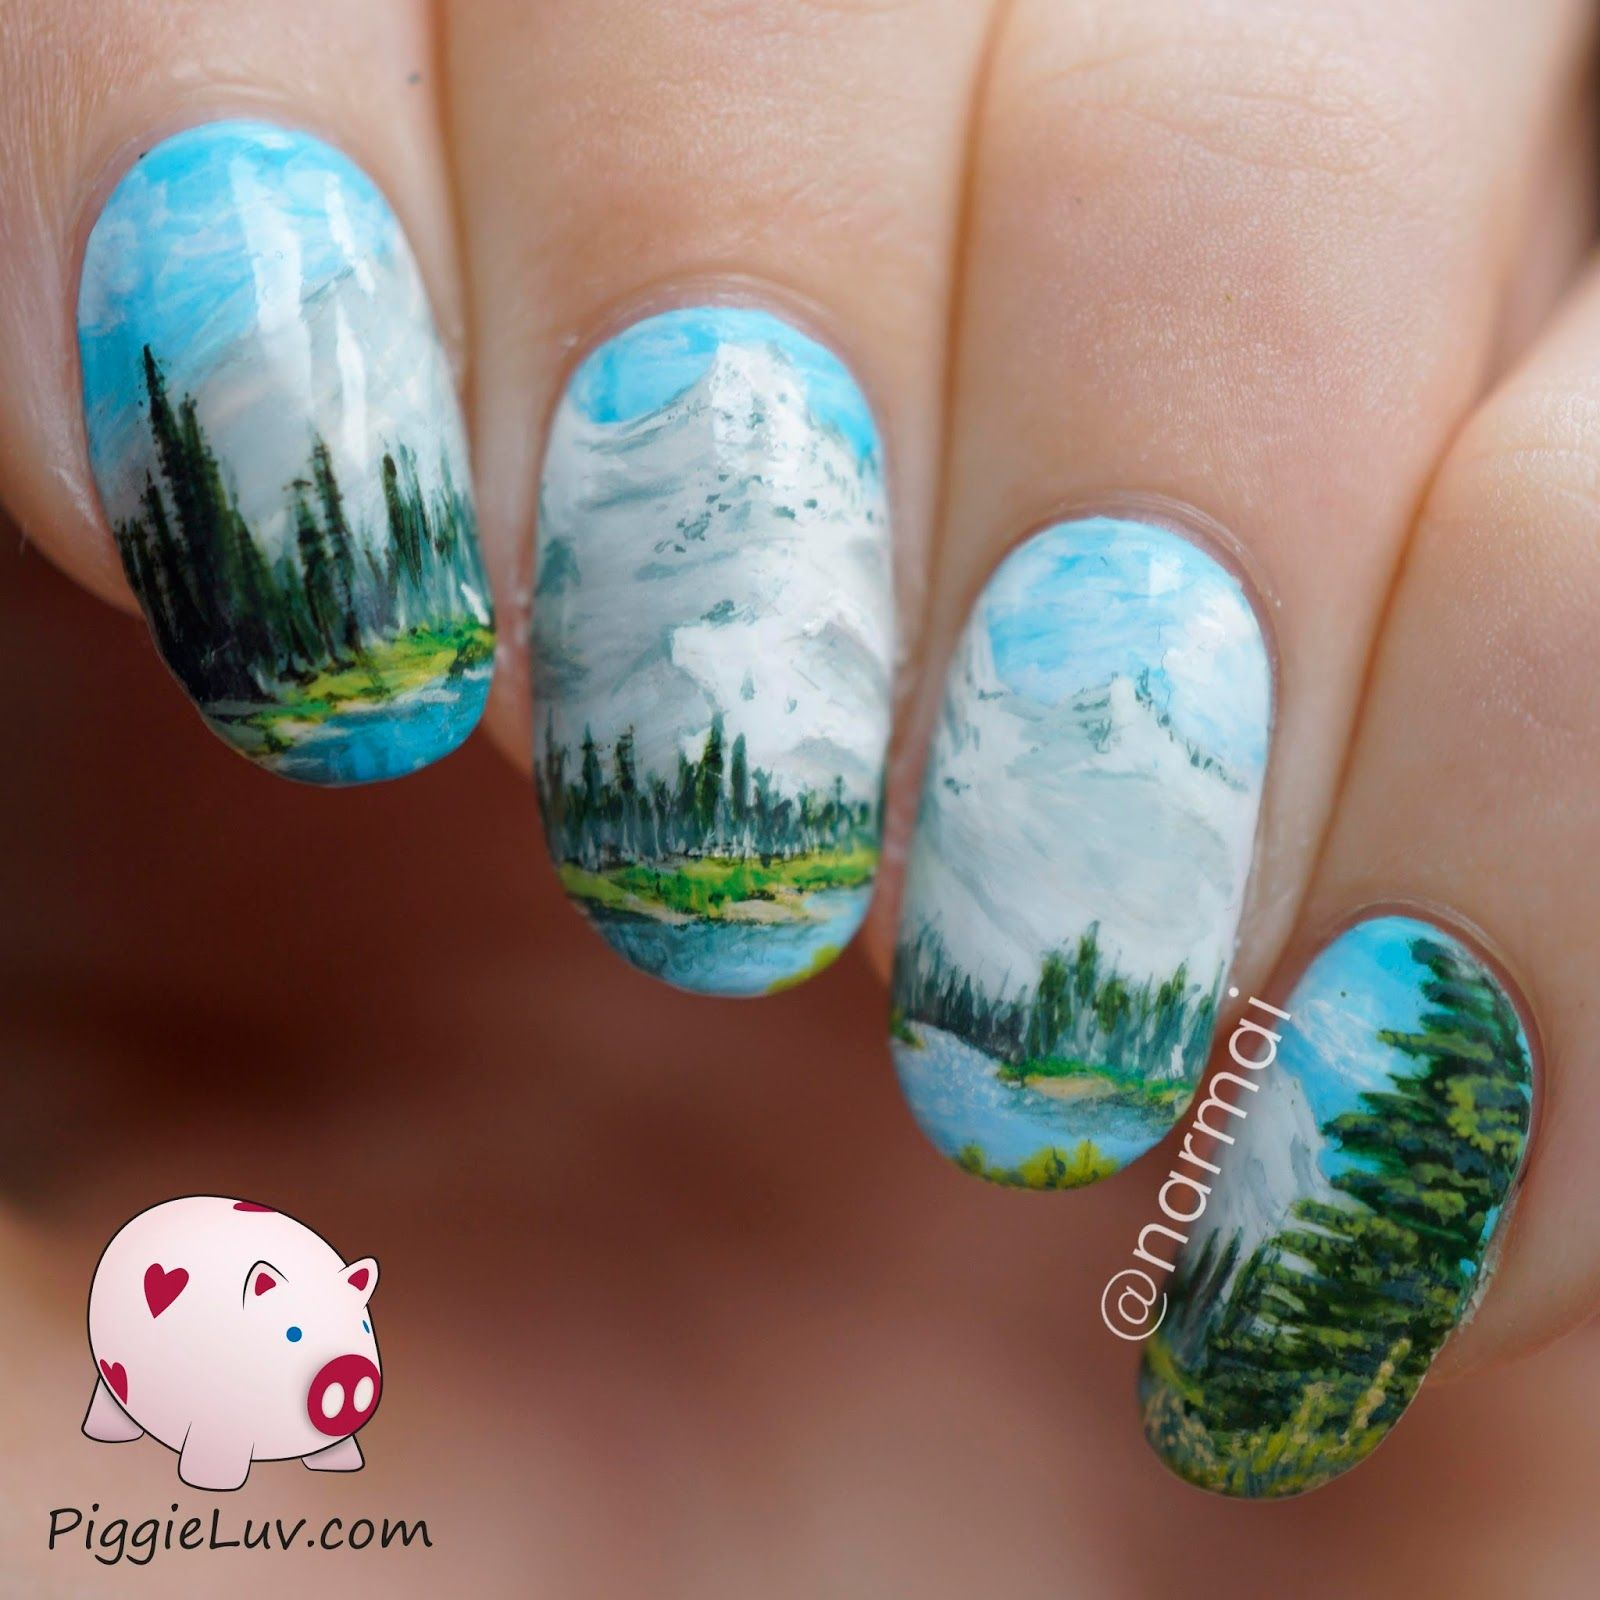 Nail Art Inspired By A Bob Ross Painting